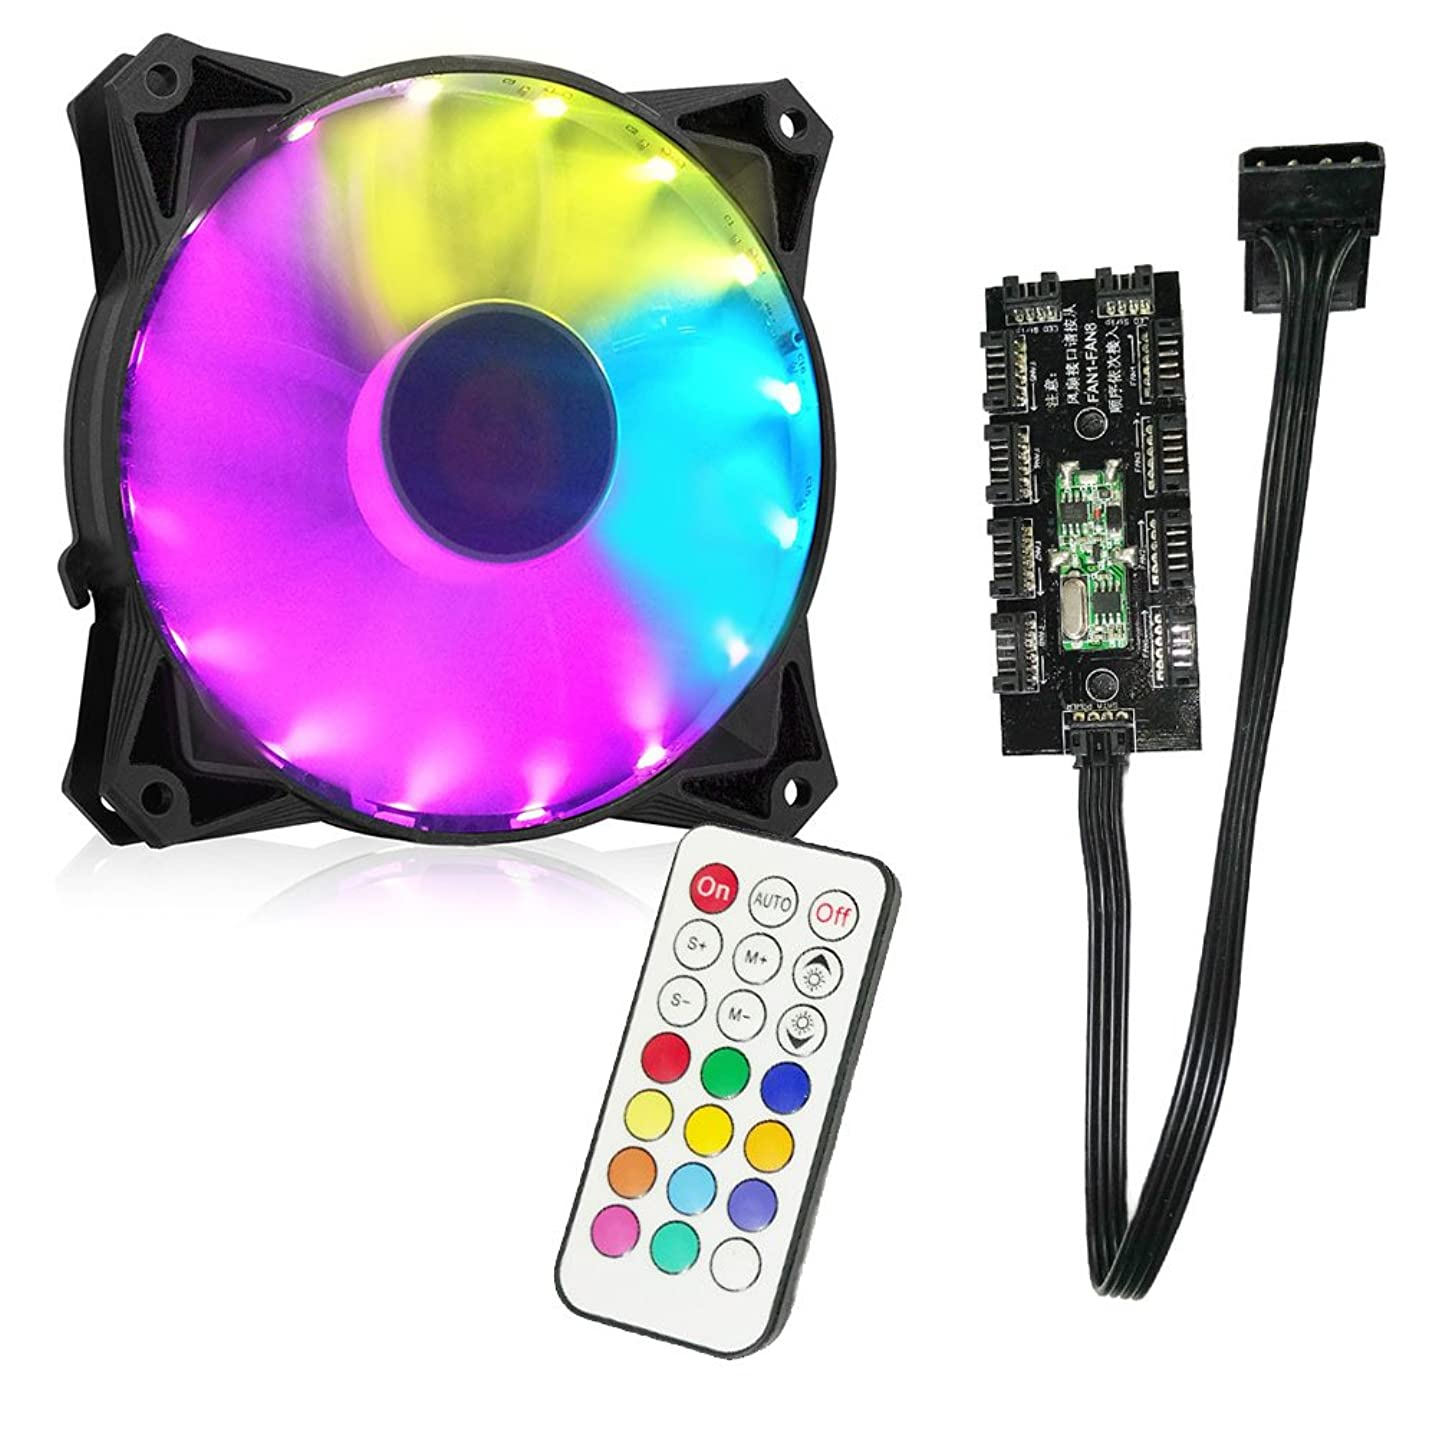 OYJJ RGB Fan Chassis Fan 120mm with Remote Control for Desktop Computer Creative Led Light Cooling Fan RGB Cooling Fan Desktop Computer Lighting